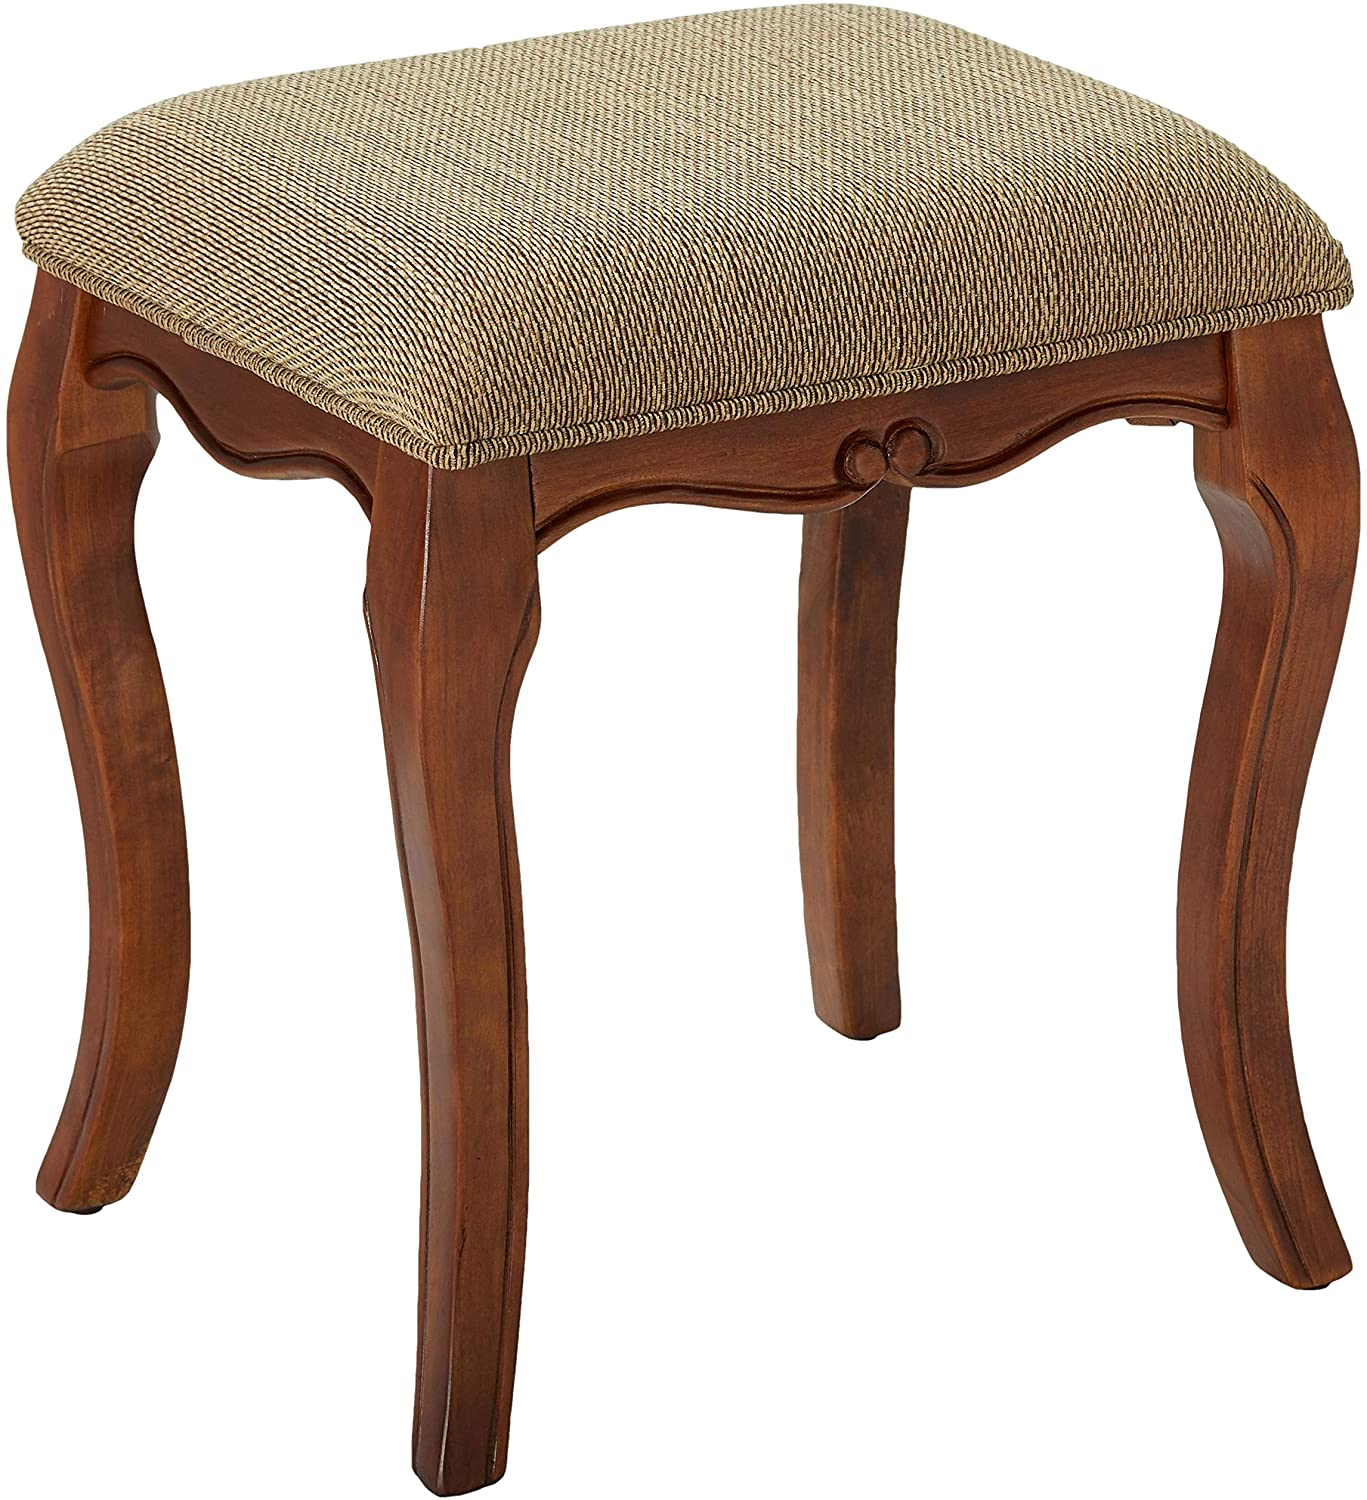 Design Toscano Lady Cheap mail order sales Guinevere Makeup Stool Chair Vanity Bedroom Max 69% OFF